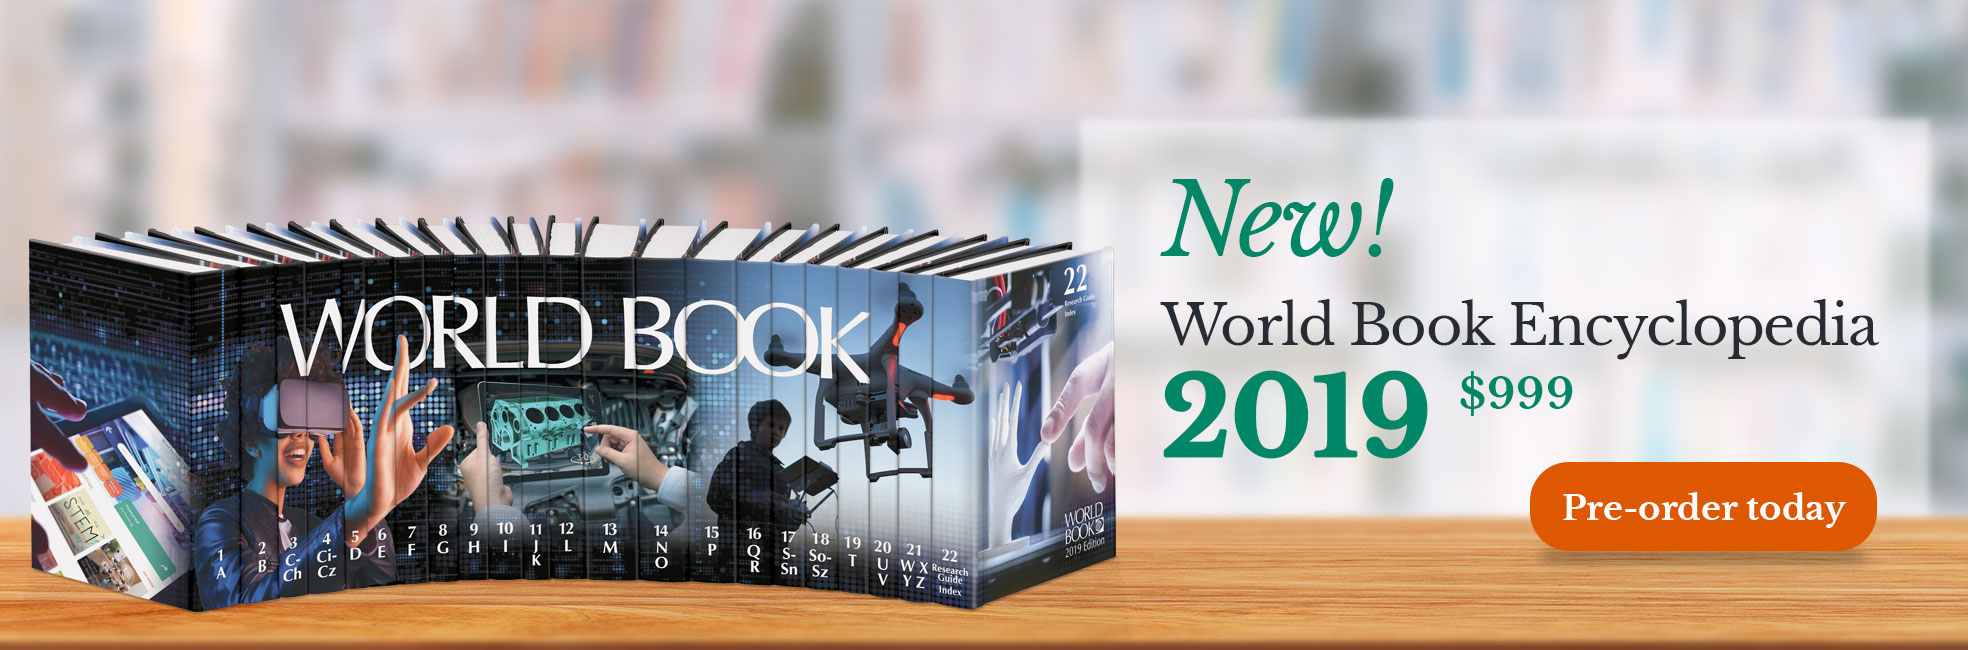 2019 World Book Encyclopedia